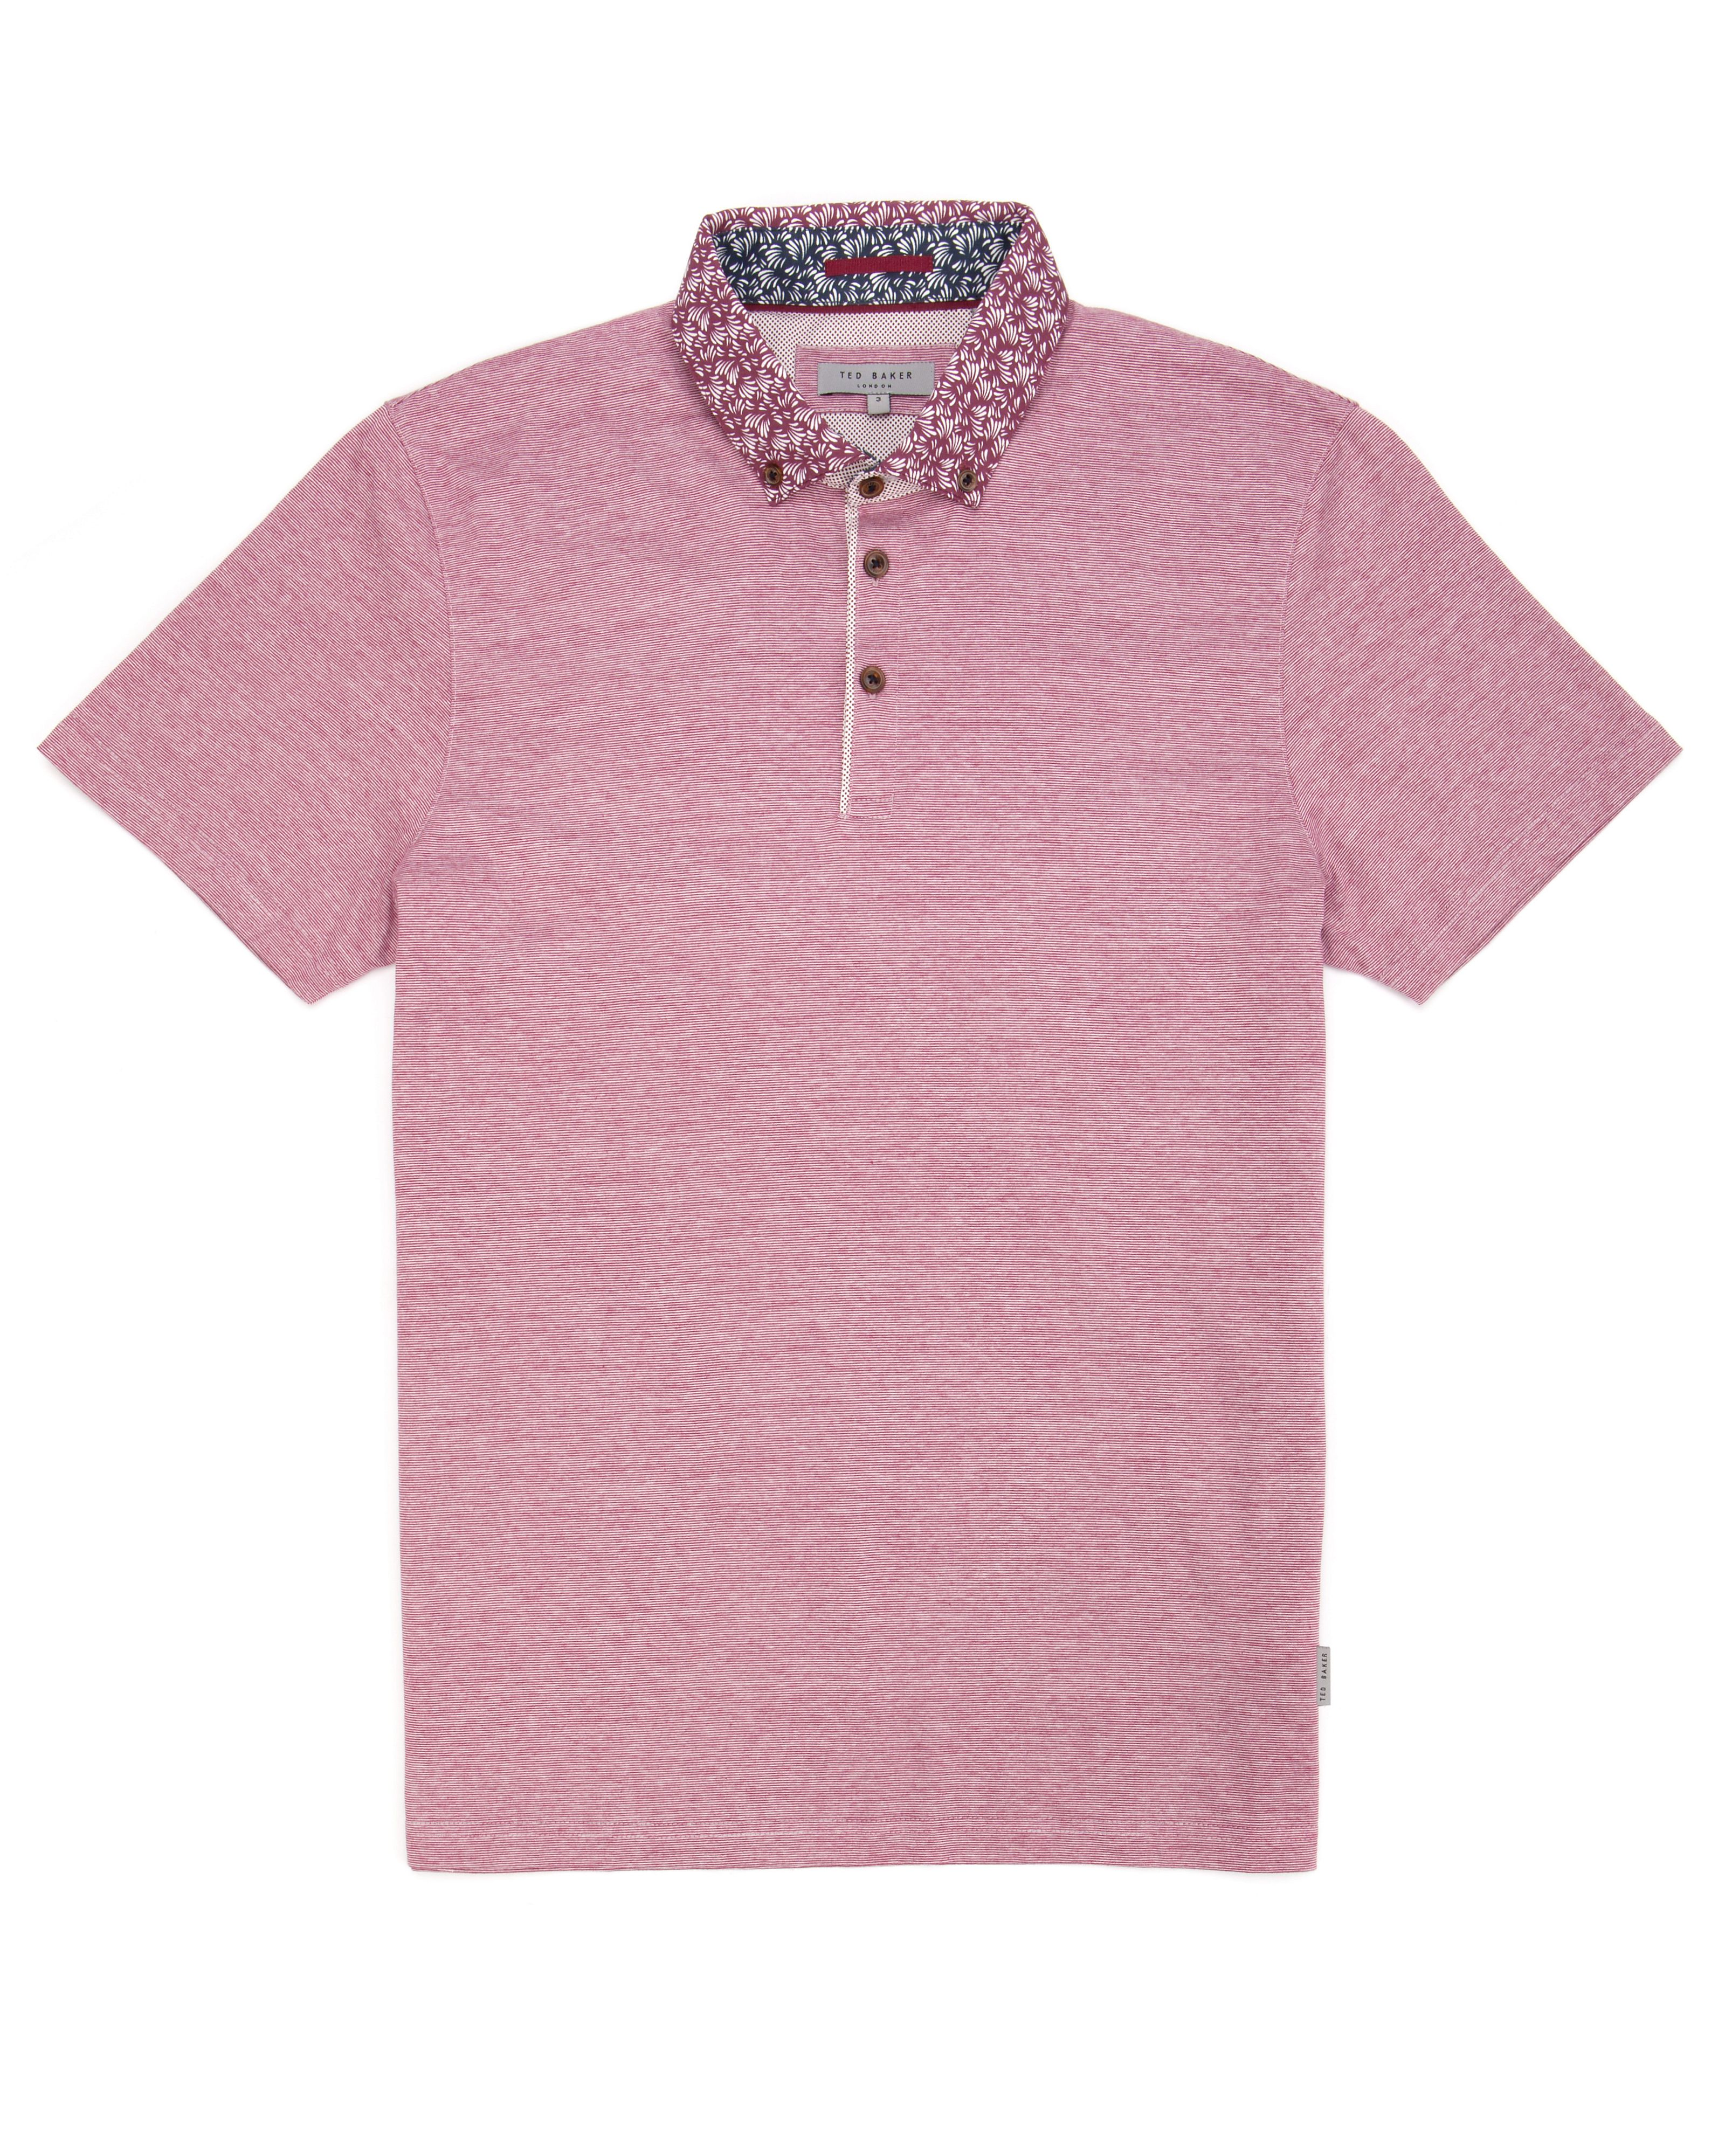 Veniz printed collar polo shirt